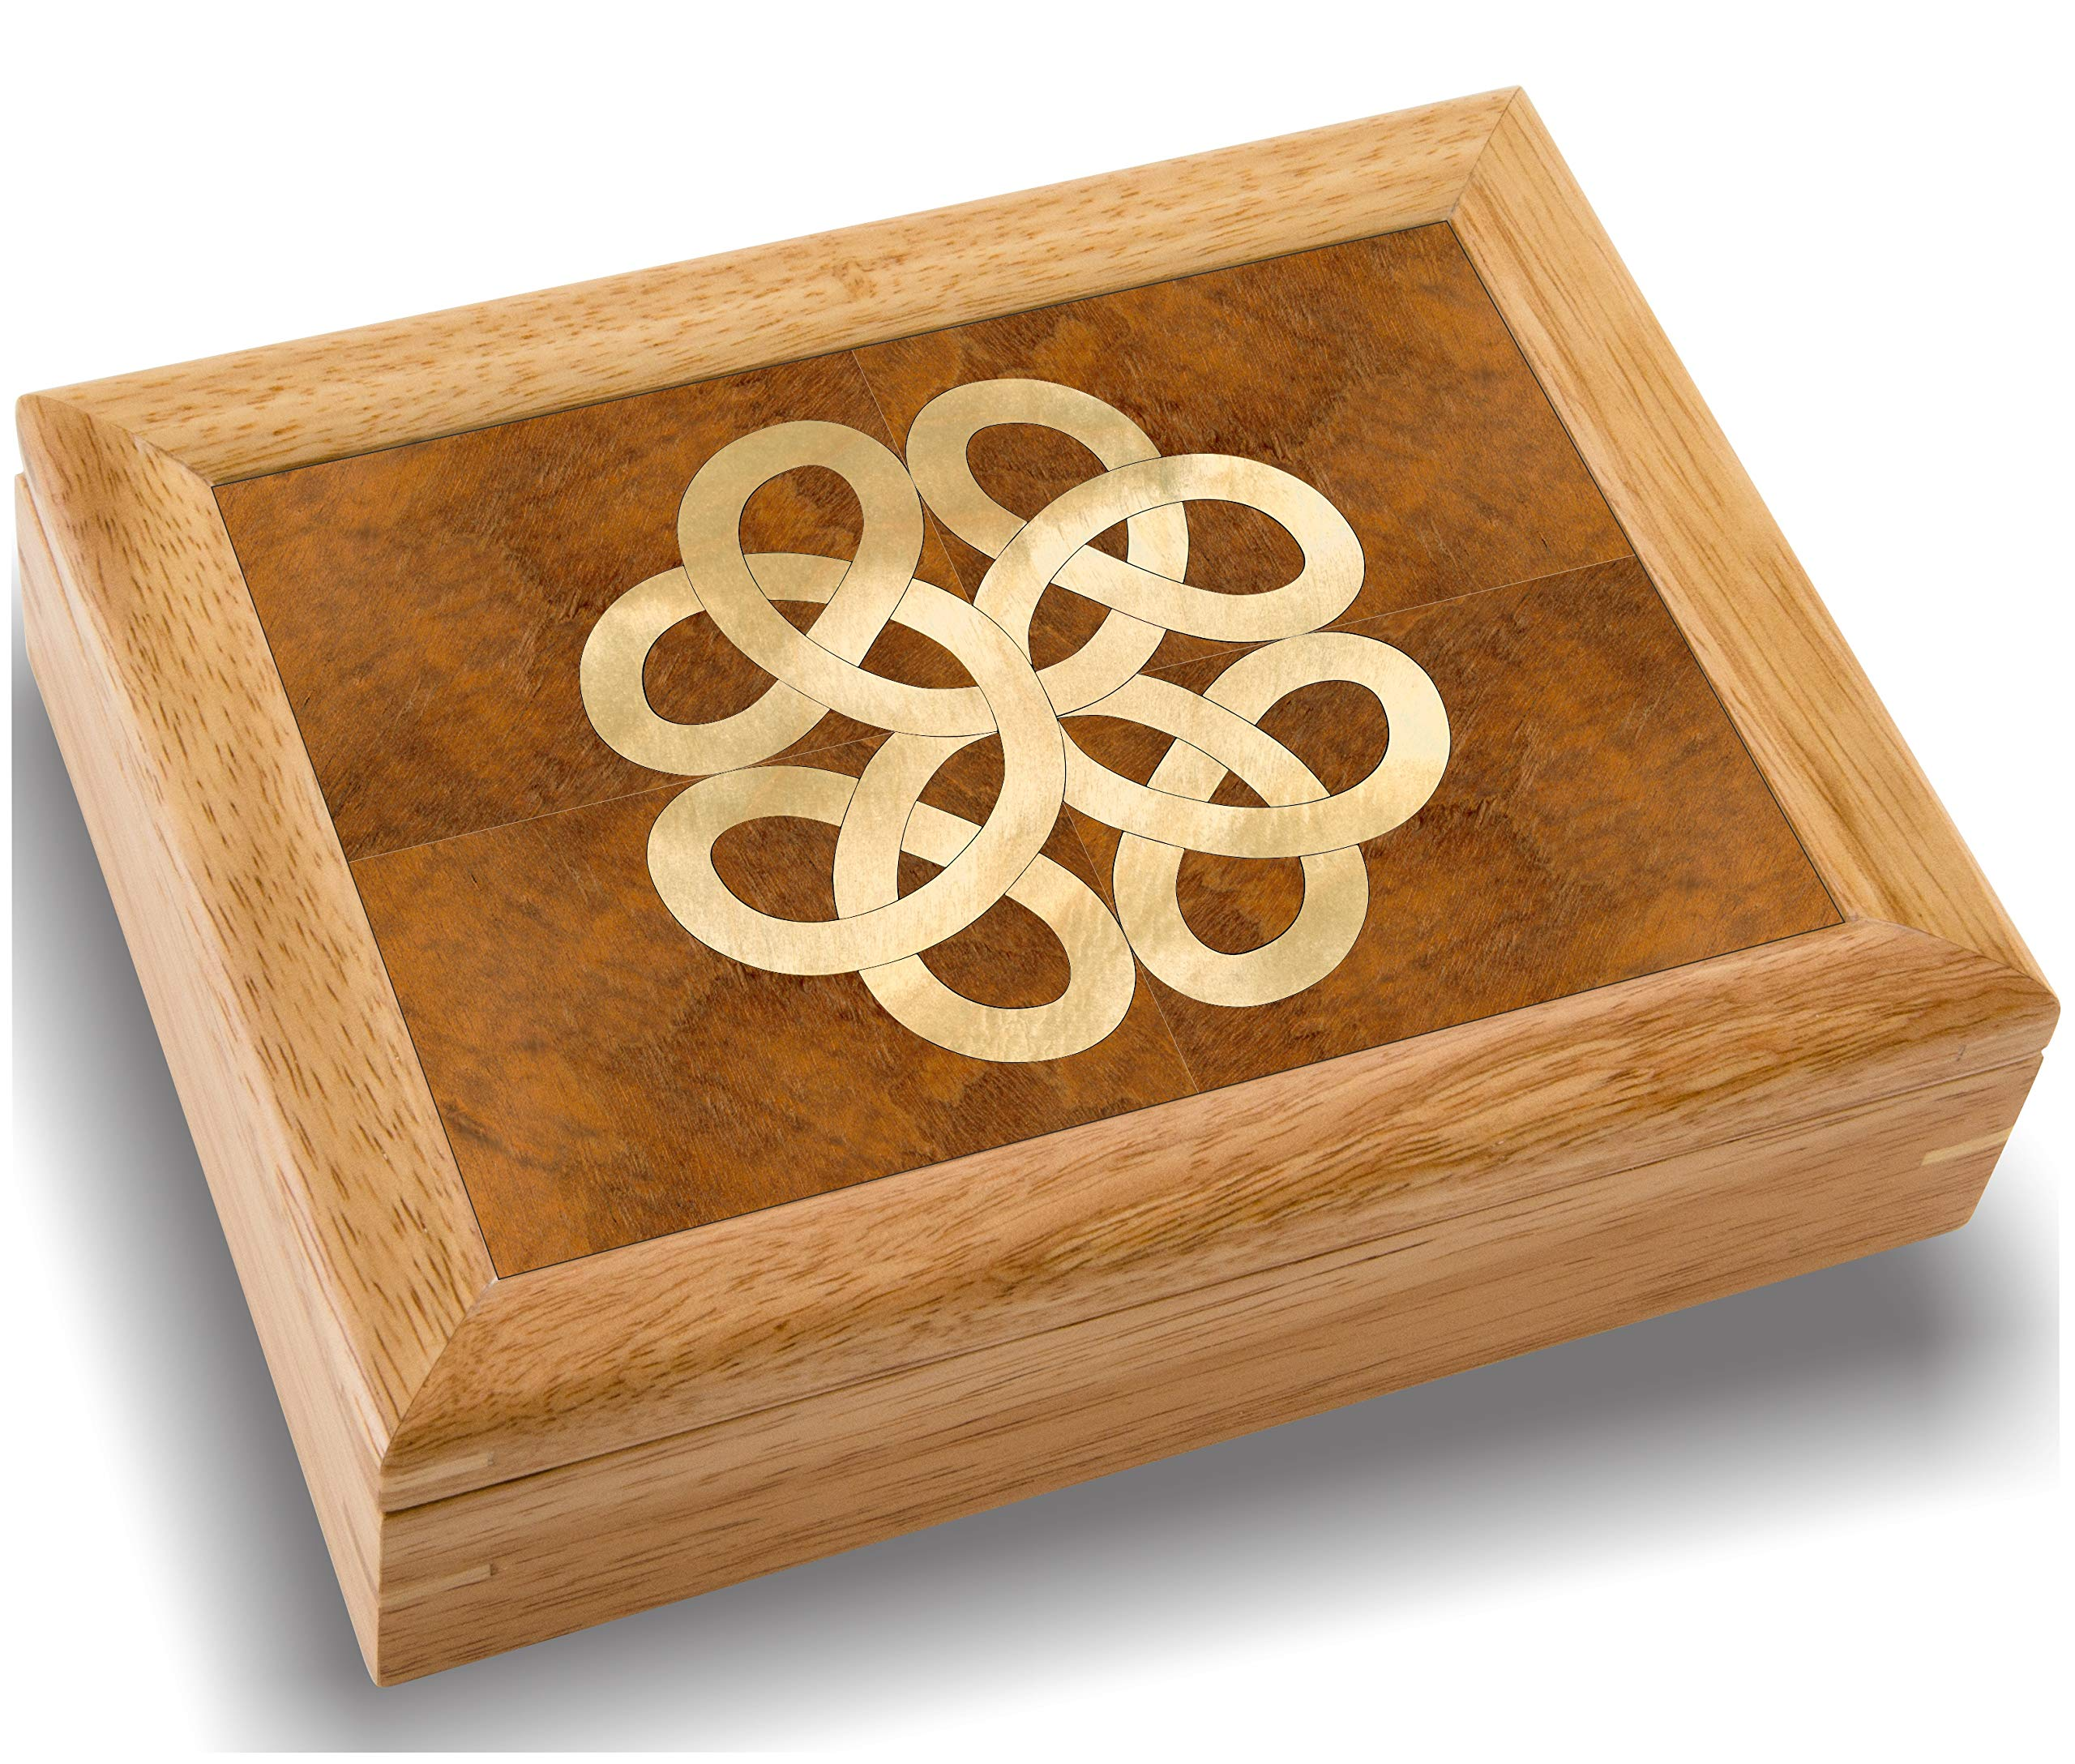 Wood Art Celtic Box - Handmade USA - Unmatched Quality - Unique, No Two are The Same - Original Work of Wood Art. A Celtic Gift, Ring, Trinket or Wood Jewelry Box (#2852 Celtic Knot 6x8x2) by MarqART